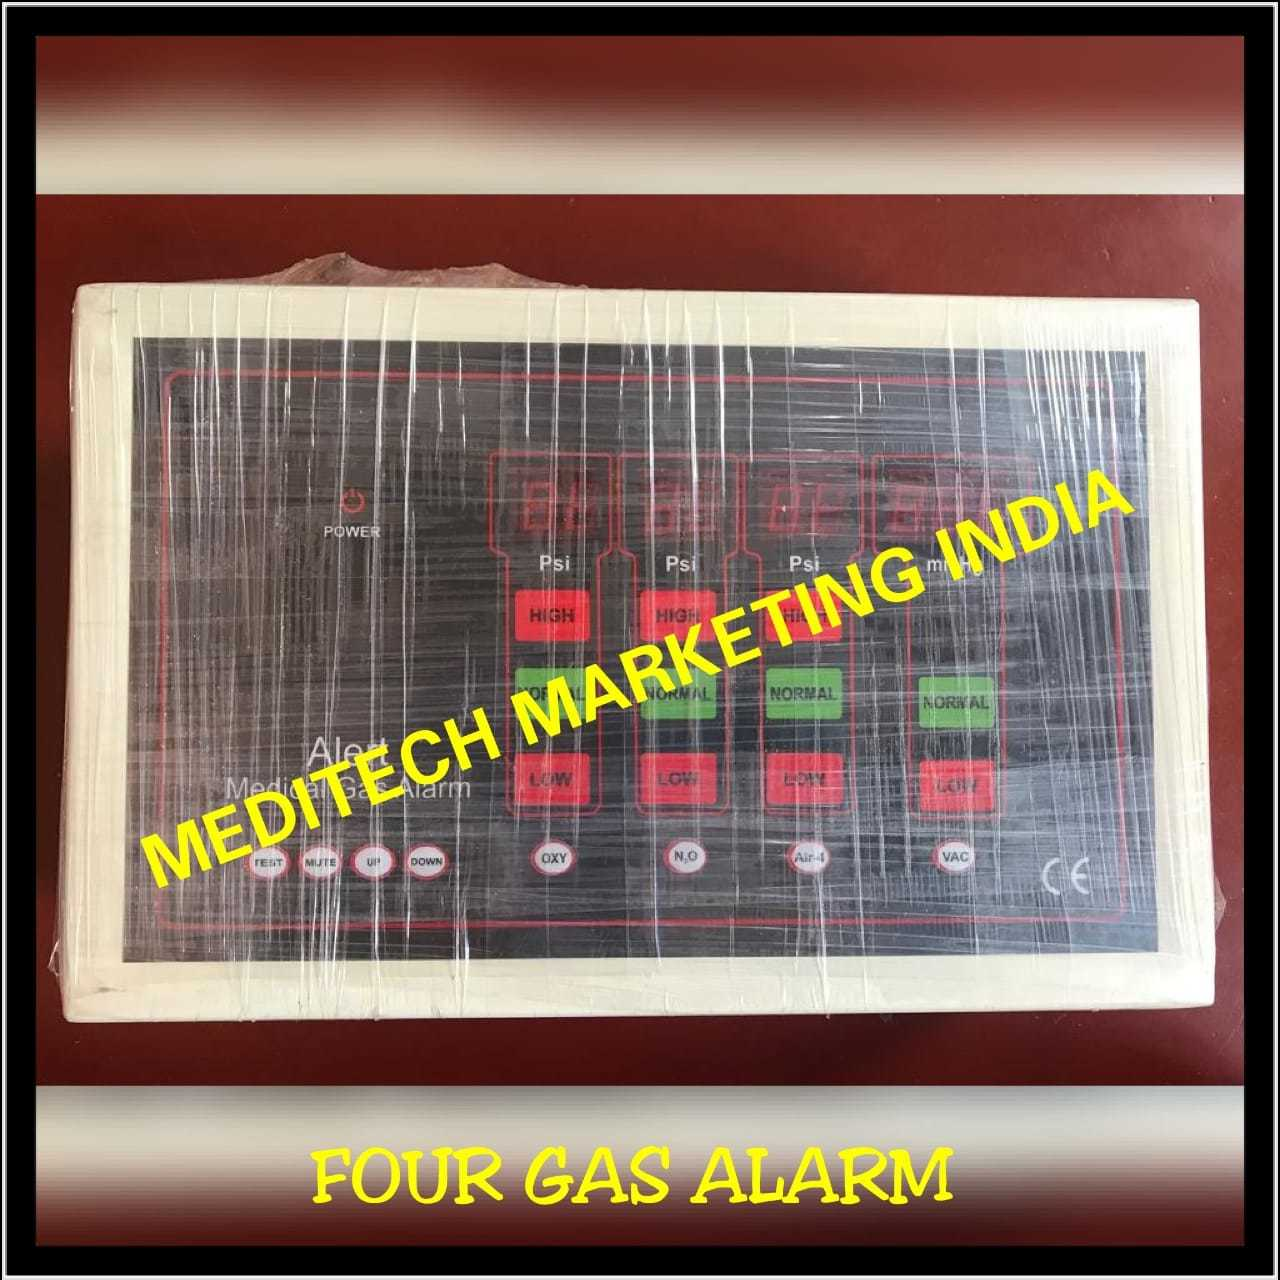 DIGITAL GAS ALARM